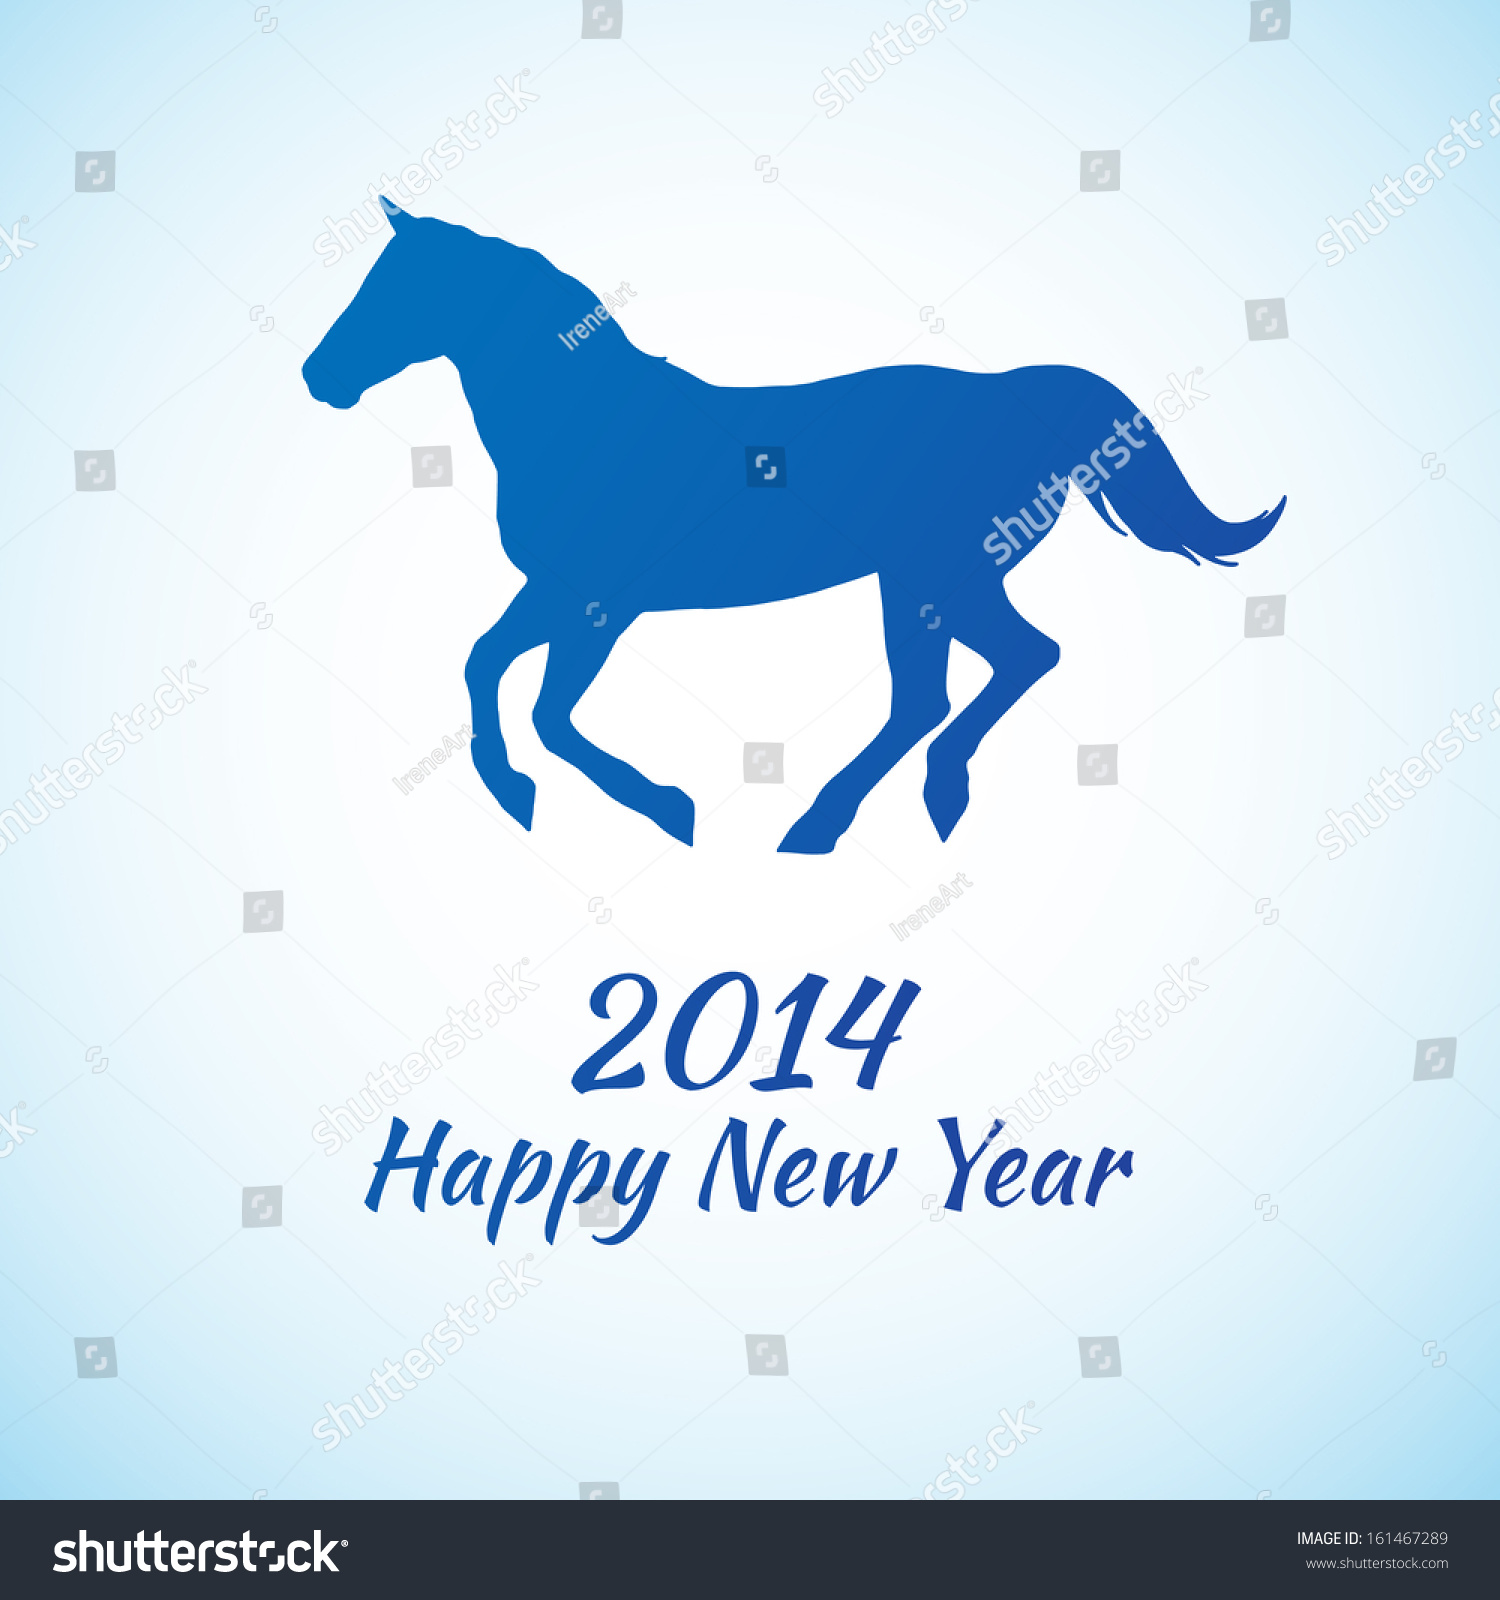 Vector background stylized silhouette horse symbol stock vector vector background with stylized silhouette horse symbol of new year 2014 buycottarizona